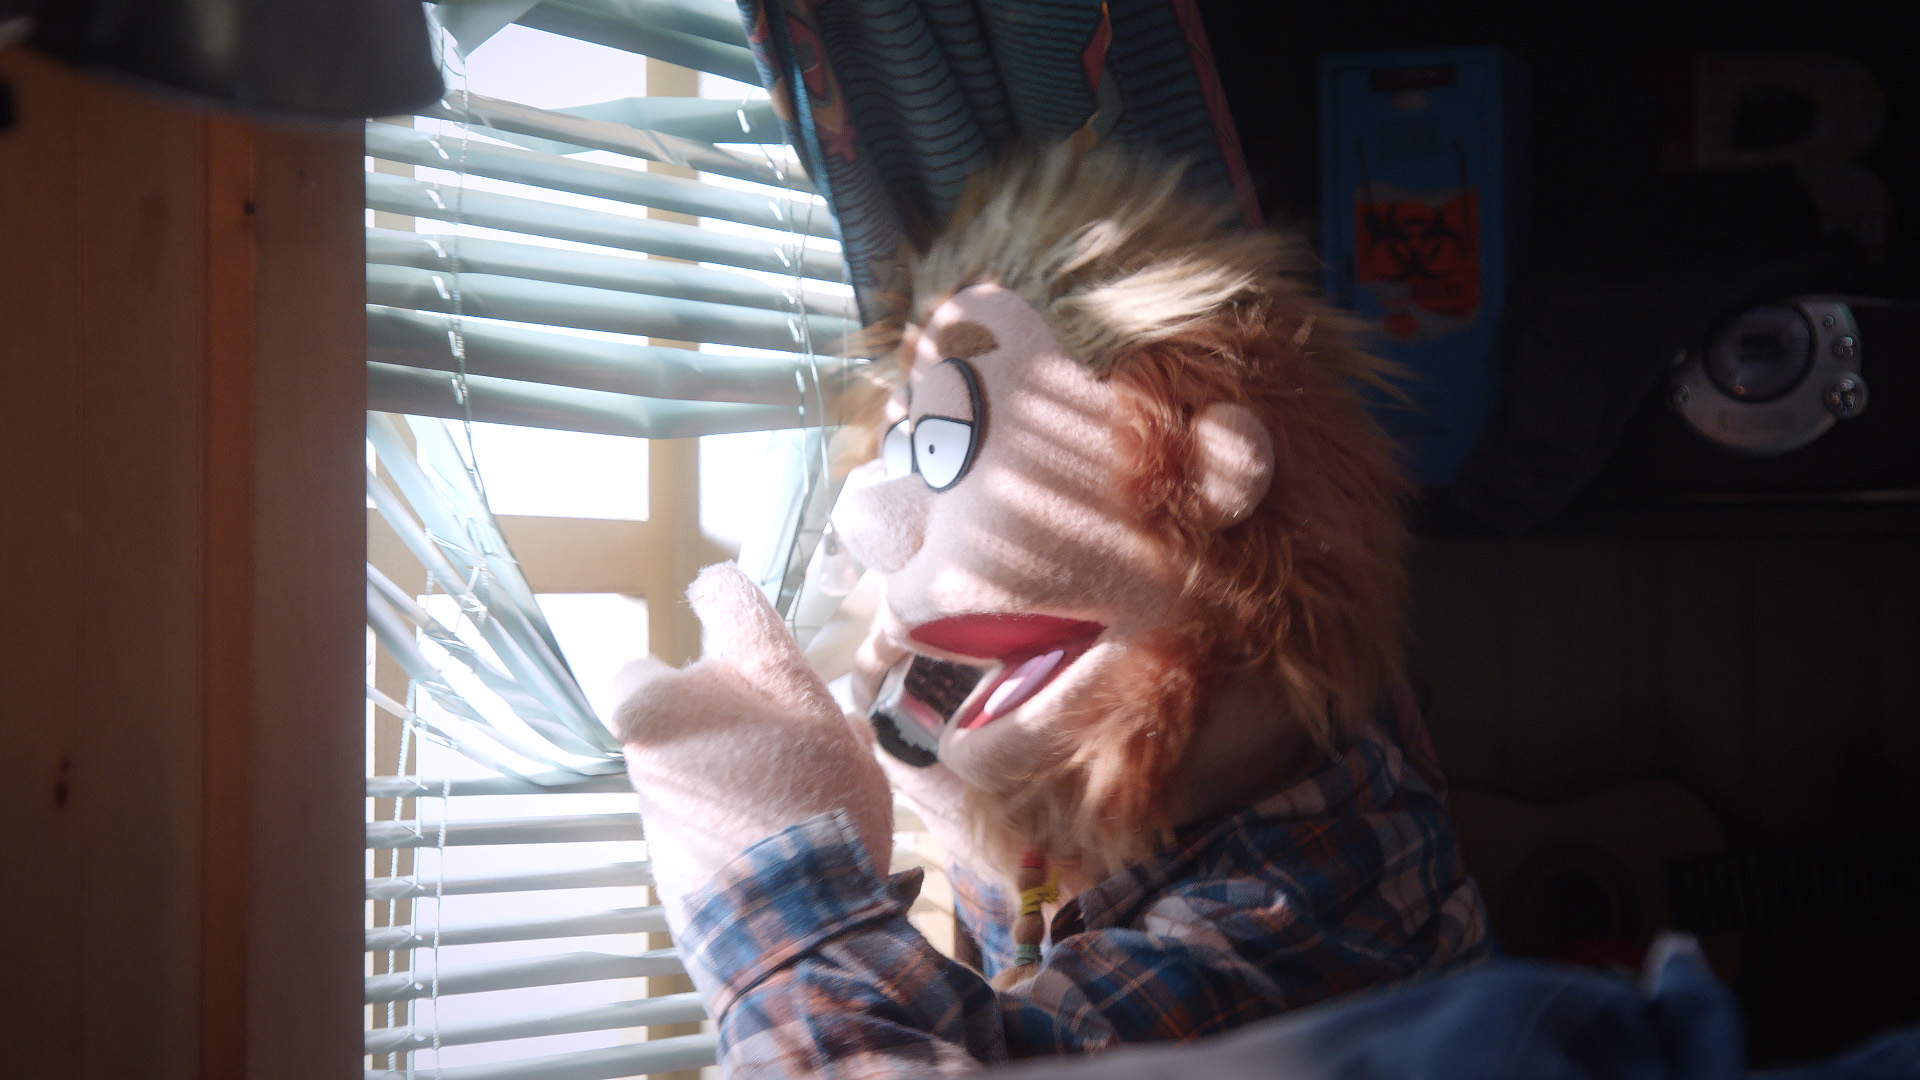 Bobby Fletcher looks out the window on Comedy Central's Crank Yankers in a call directed by Todd Bishop